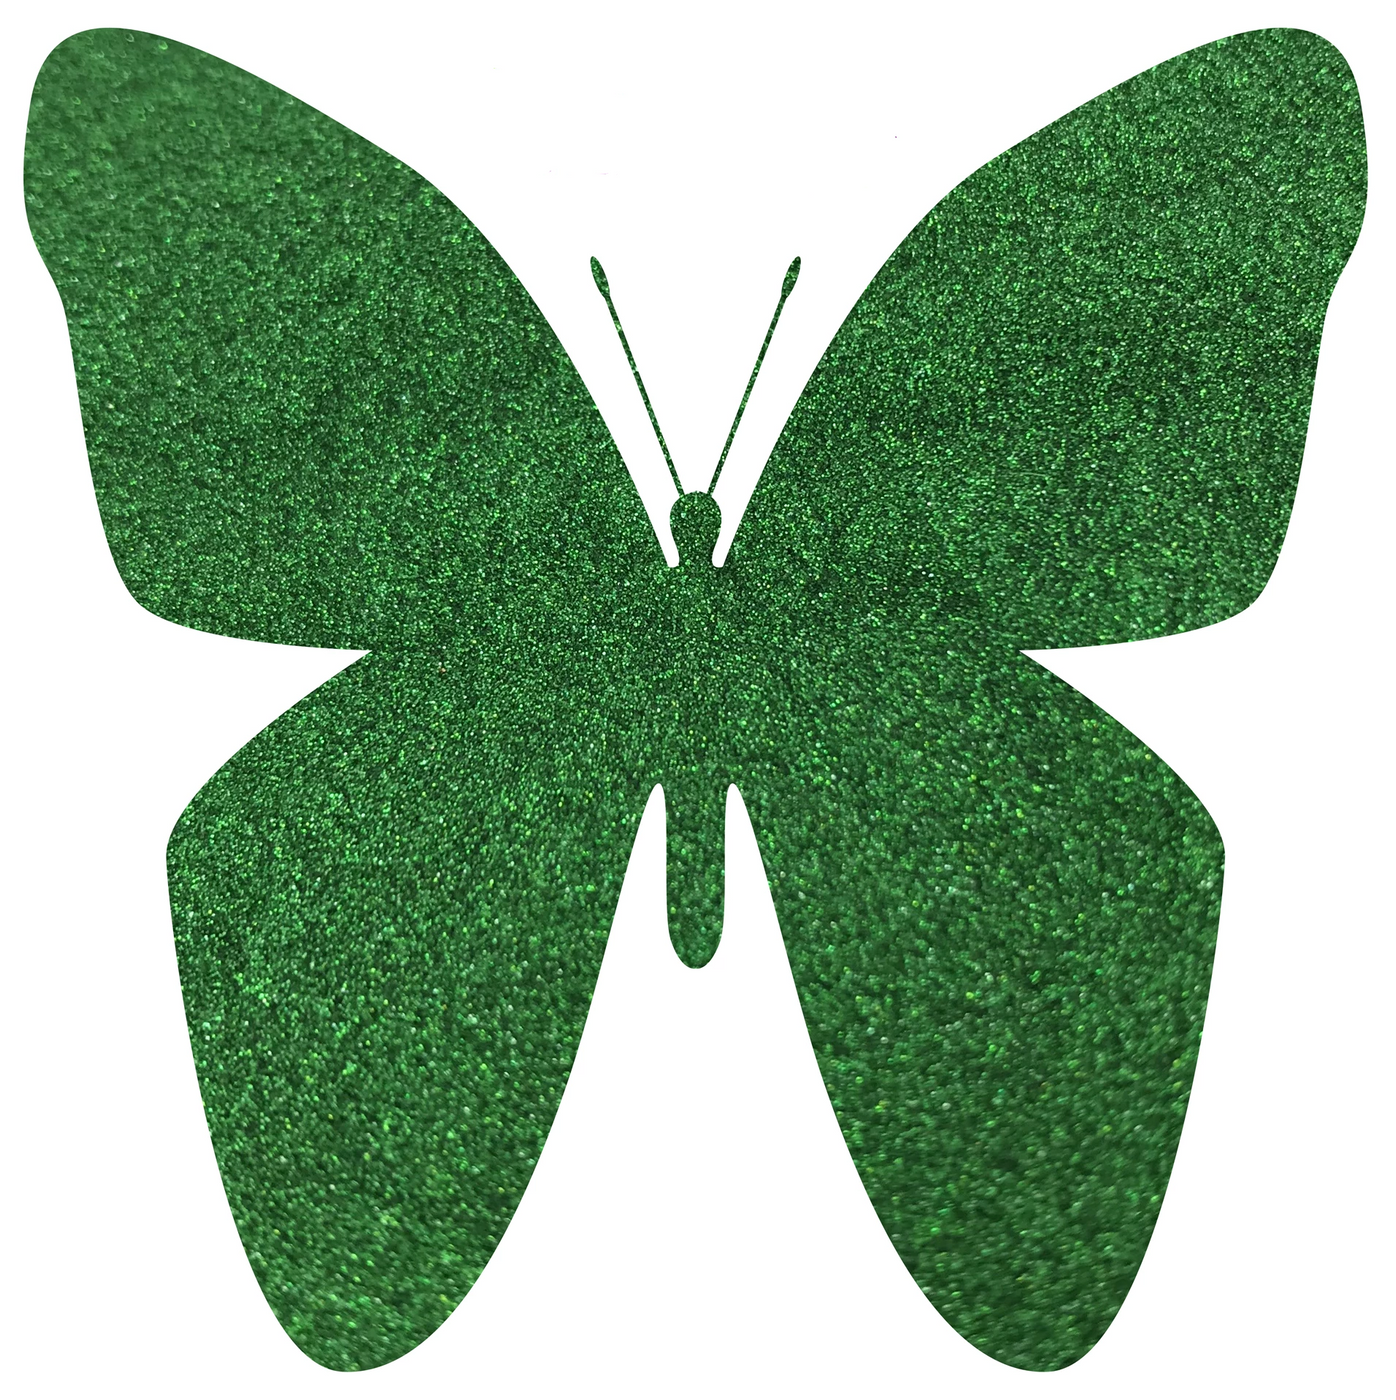 Microfine Glitter Shamrock GM2041